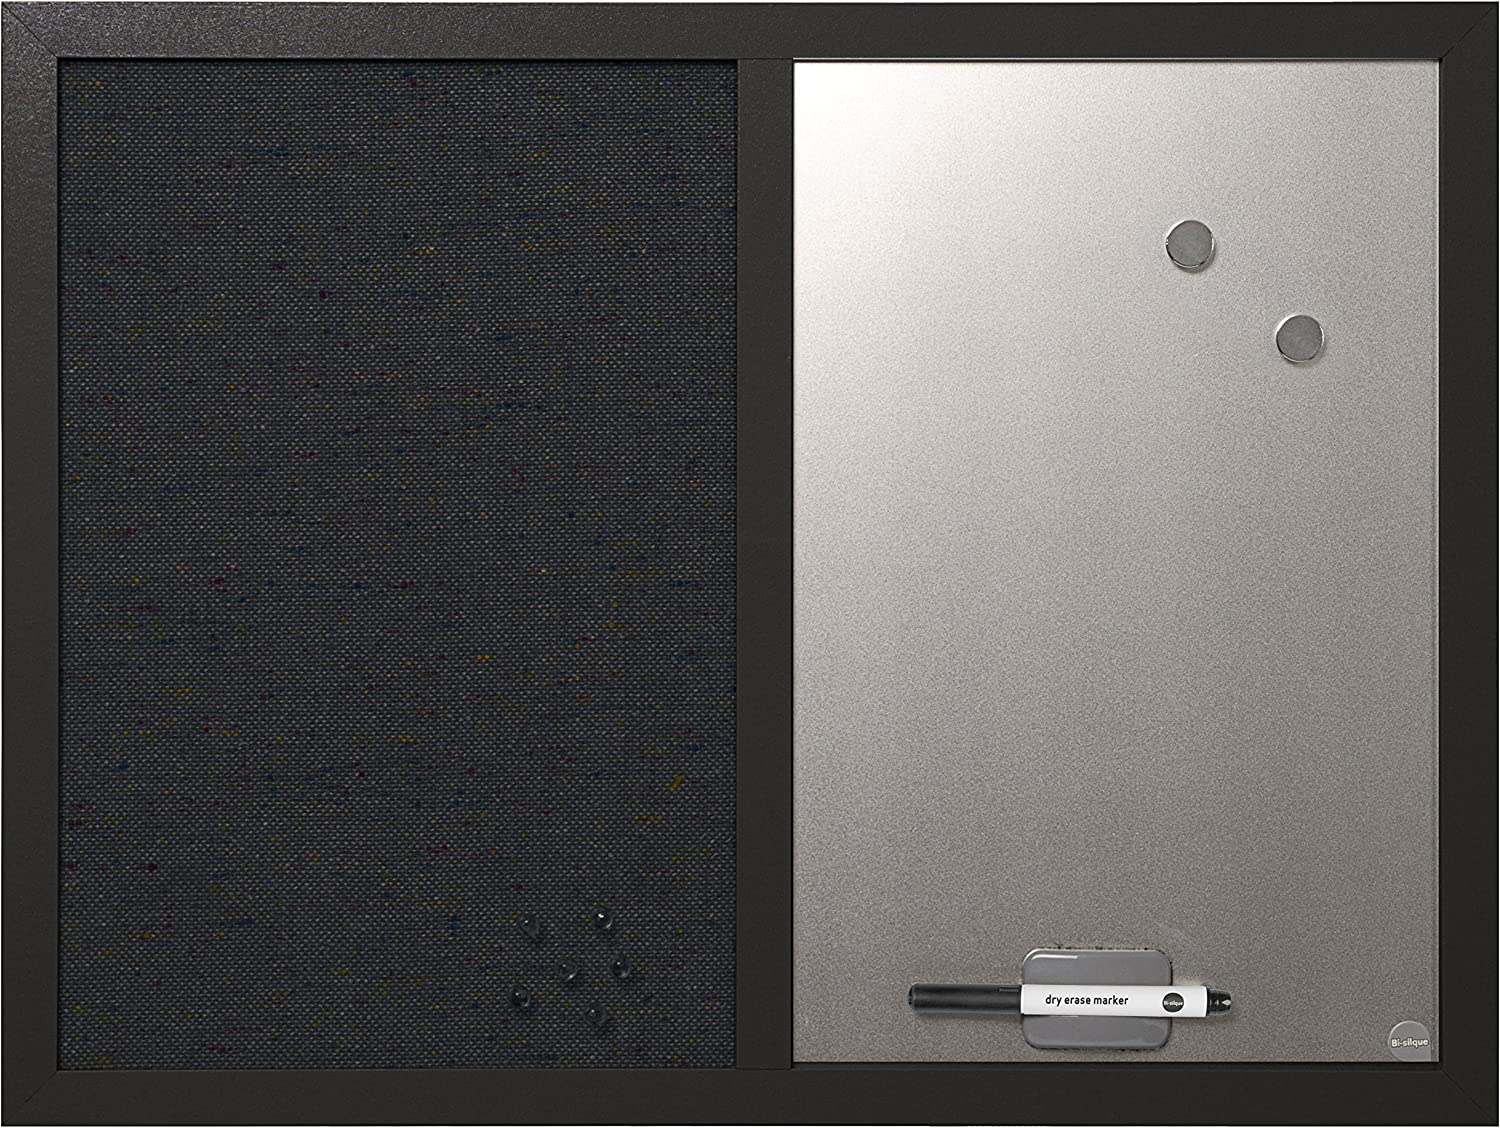 """MasterVision Combo Dry Erase Whiteboard and Grey Fabric Bulletin Board, 18"""" x 24"""", Black Frame (MX04433168)"""